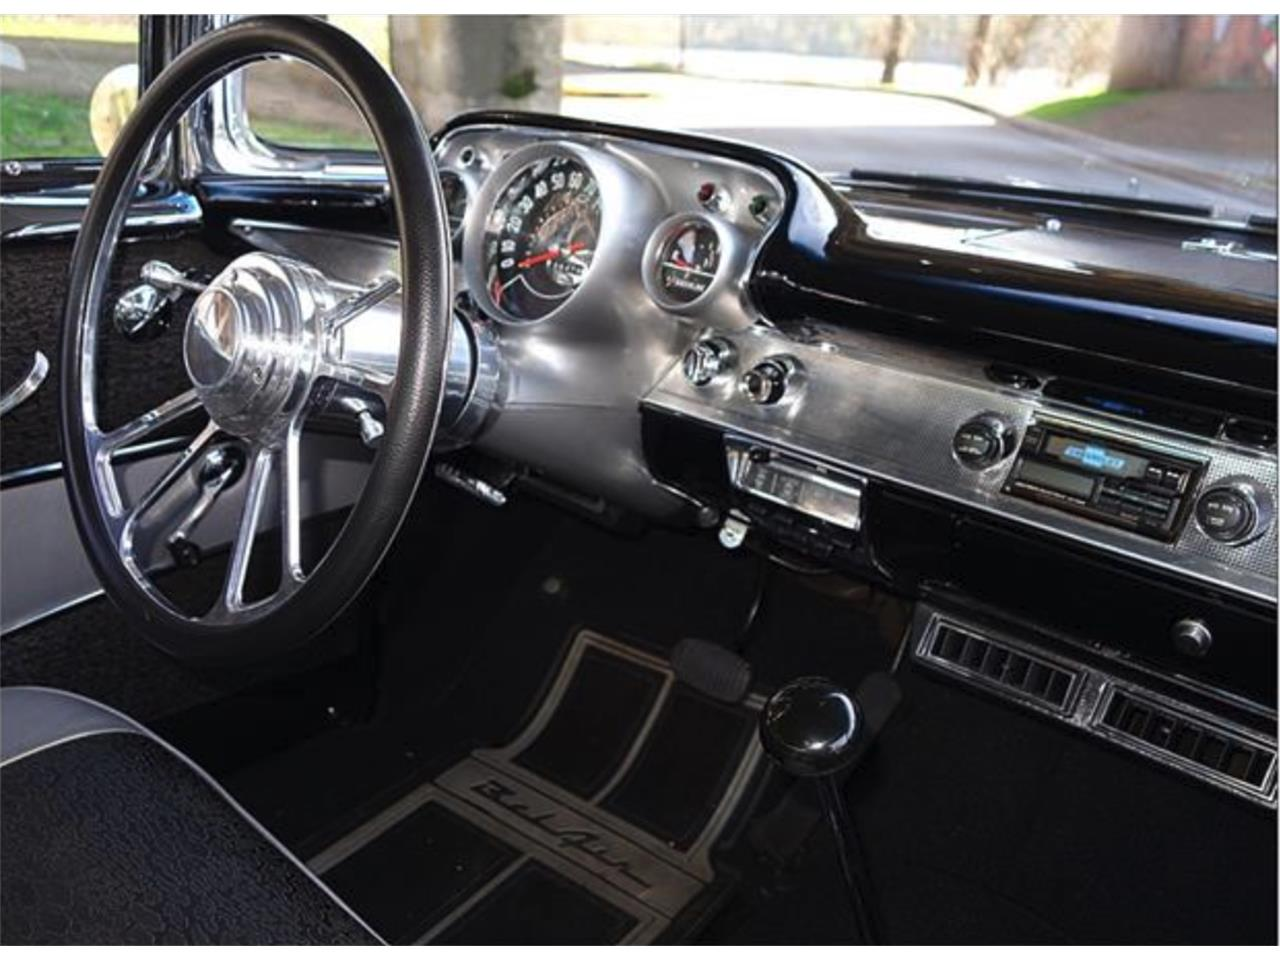 1957 Chevrolet Bel Air (CC-1216593) for sale in Stamford, Connecticut